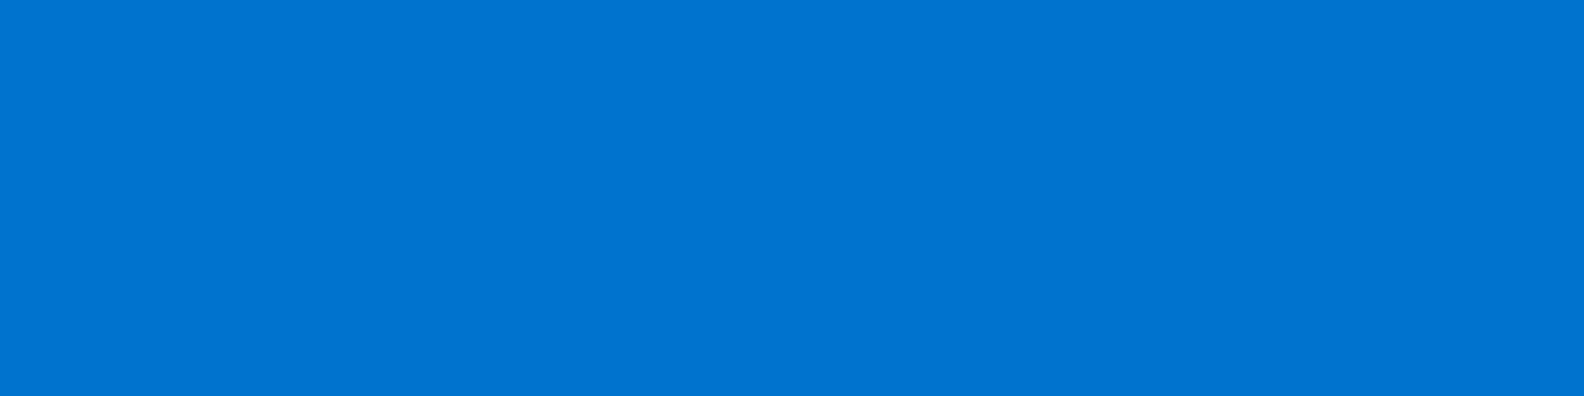 1584x396 True Blue Solid Color Background